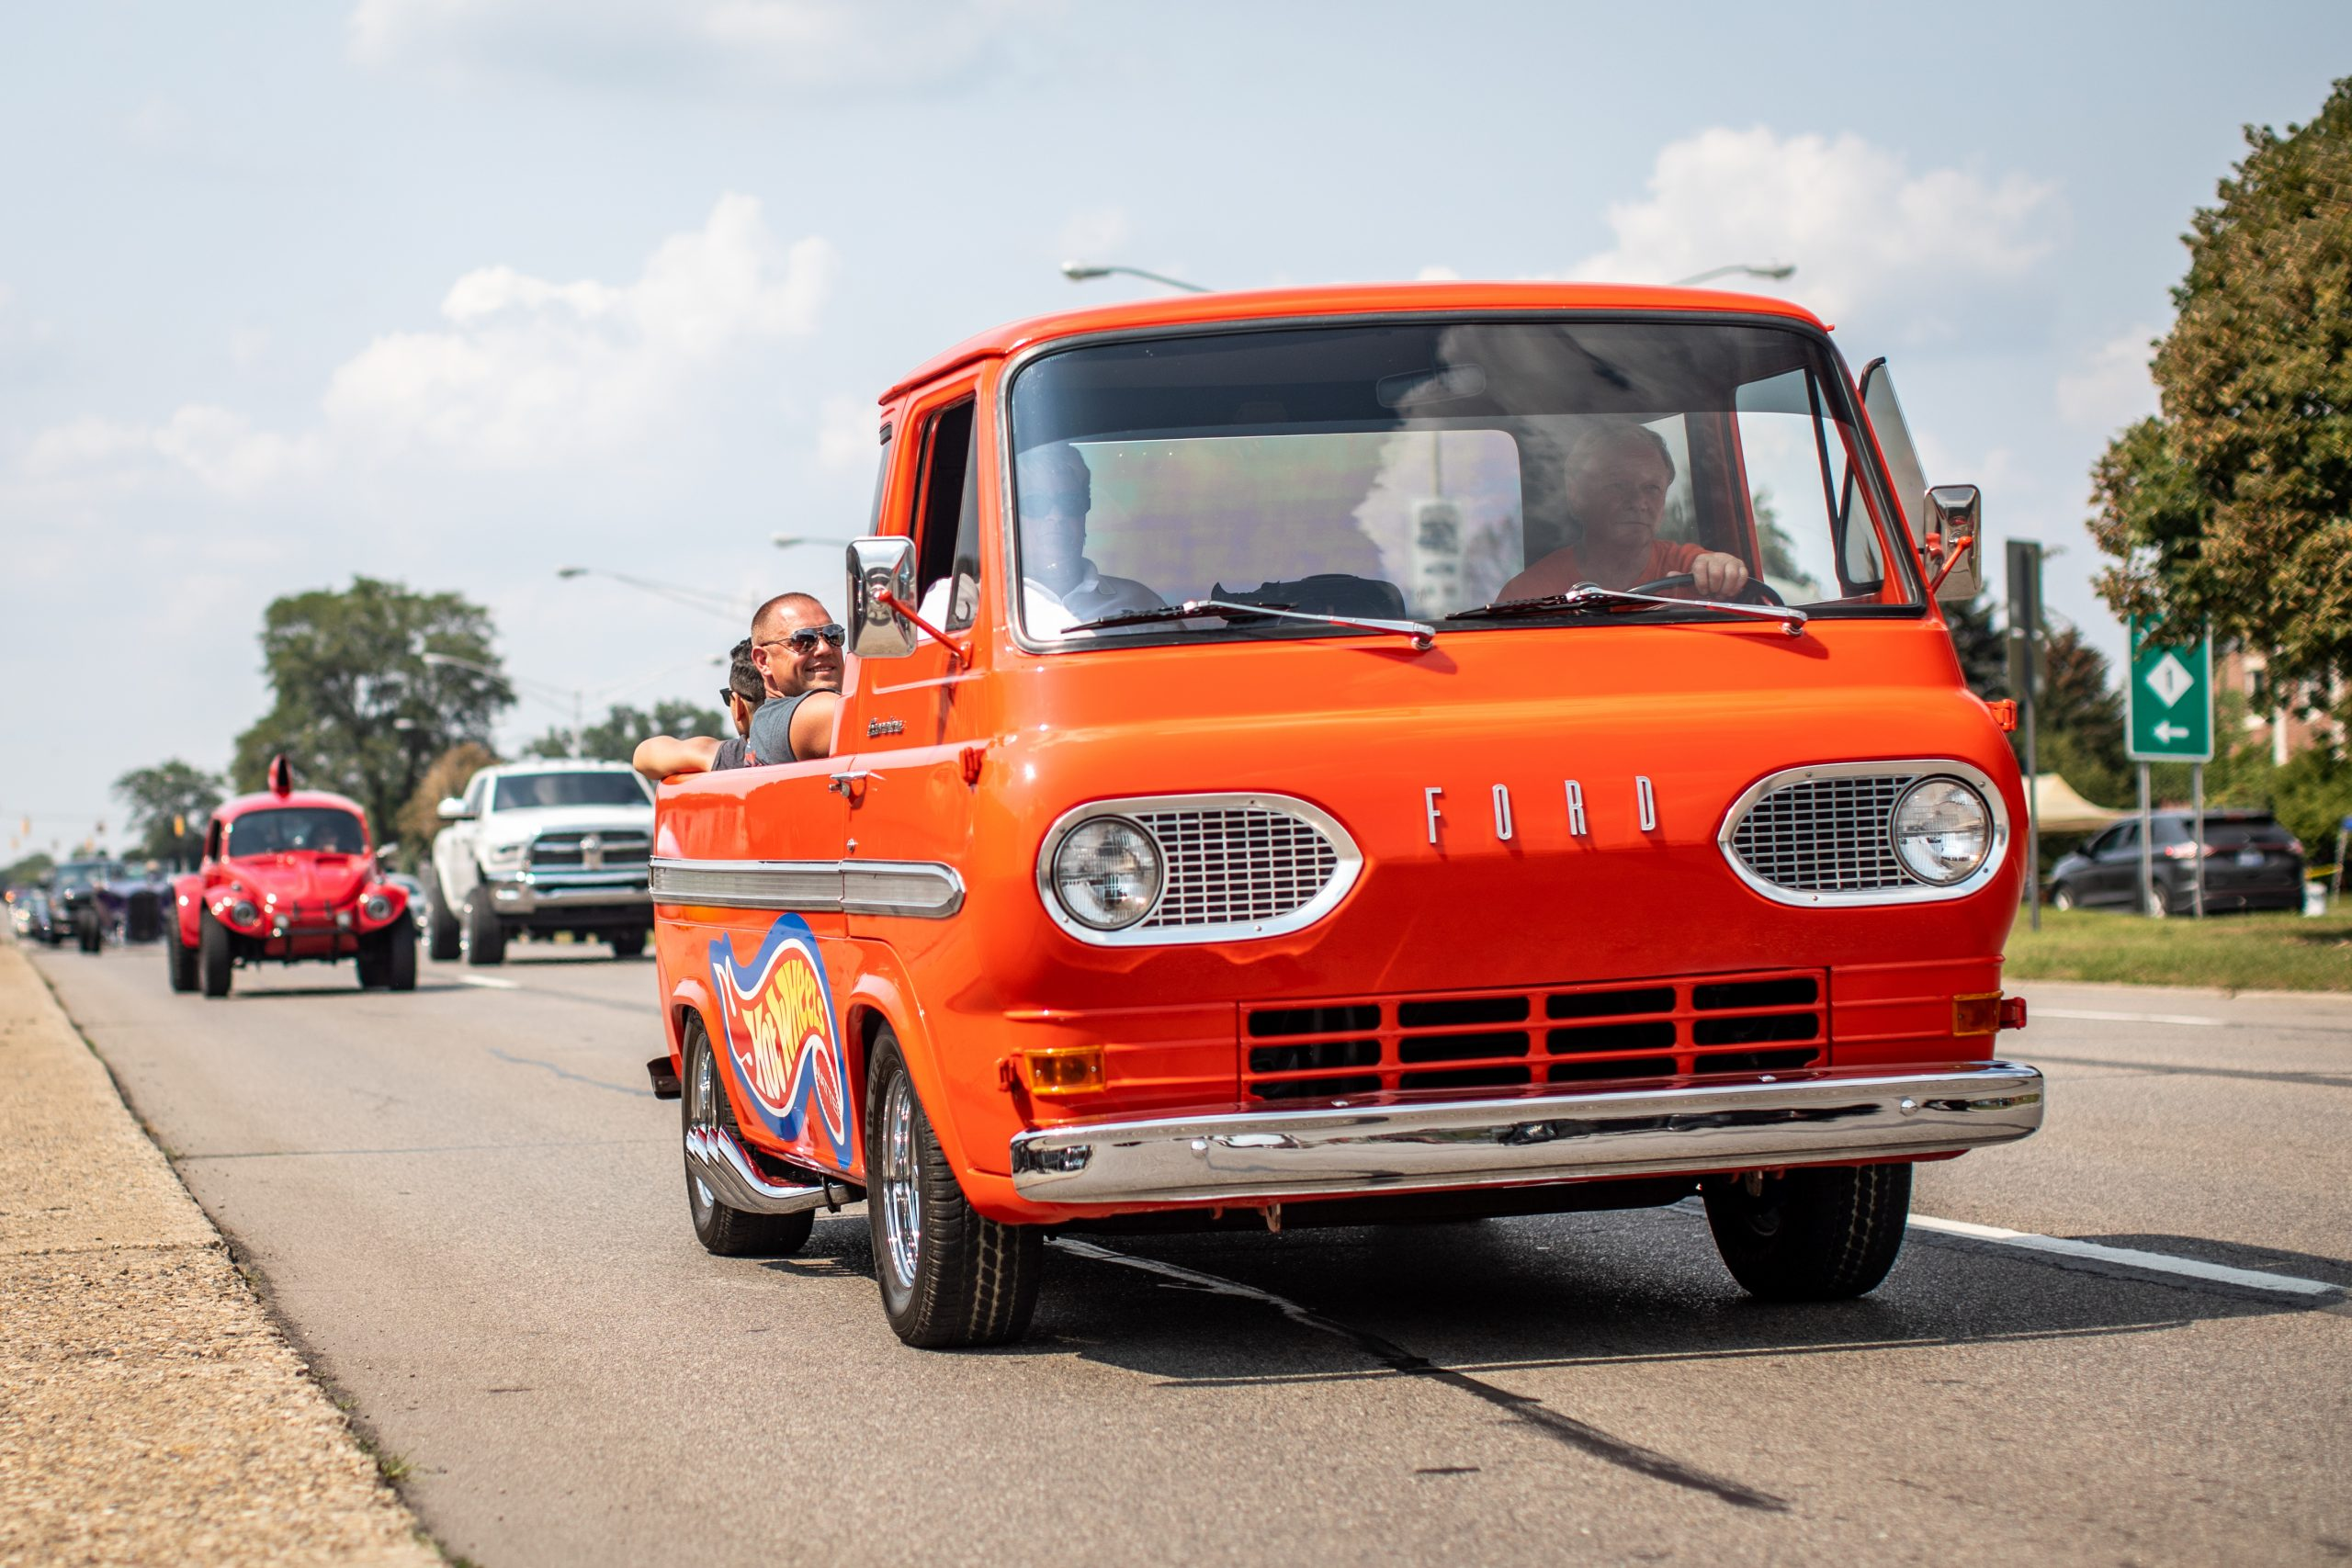 2021 Dream Cruise woodward ave action ford hot wheels truck